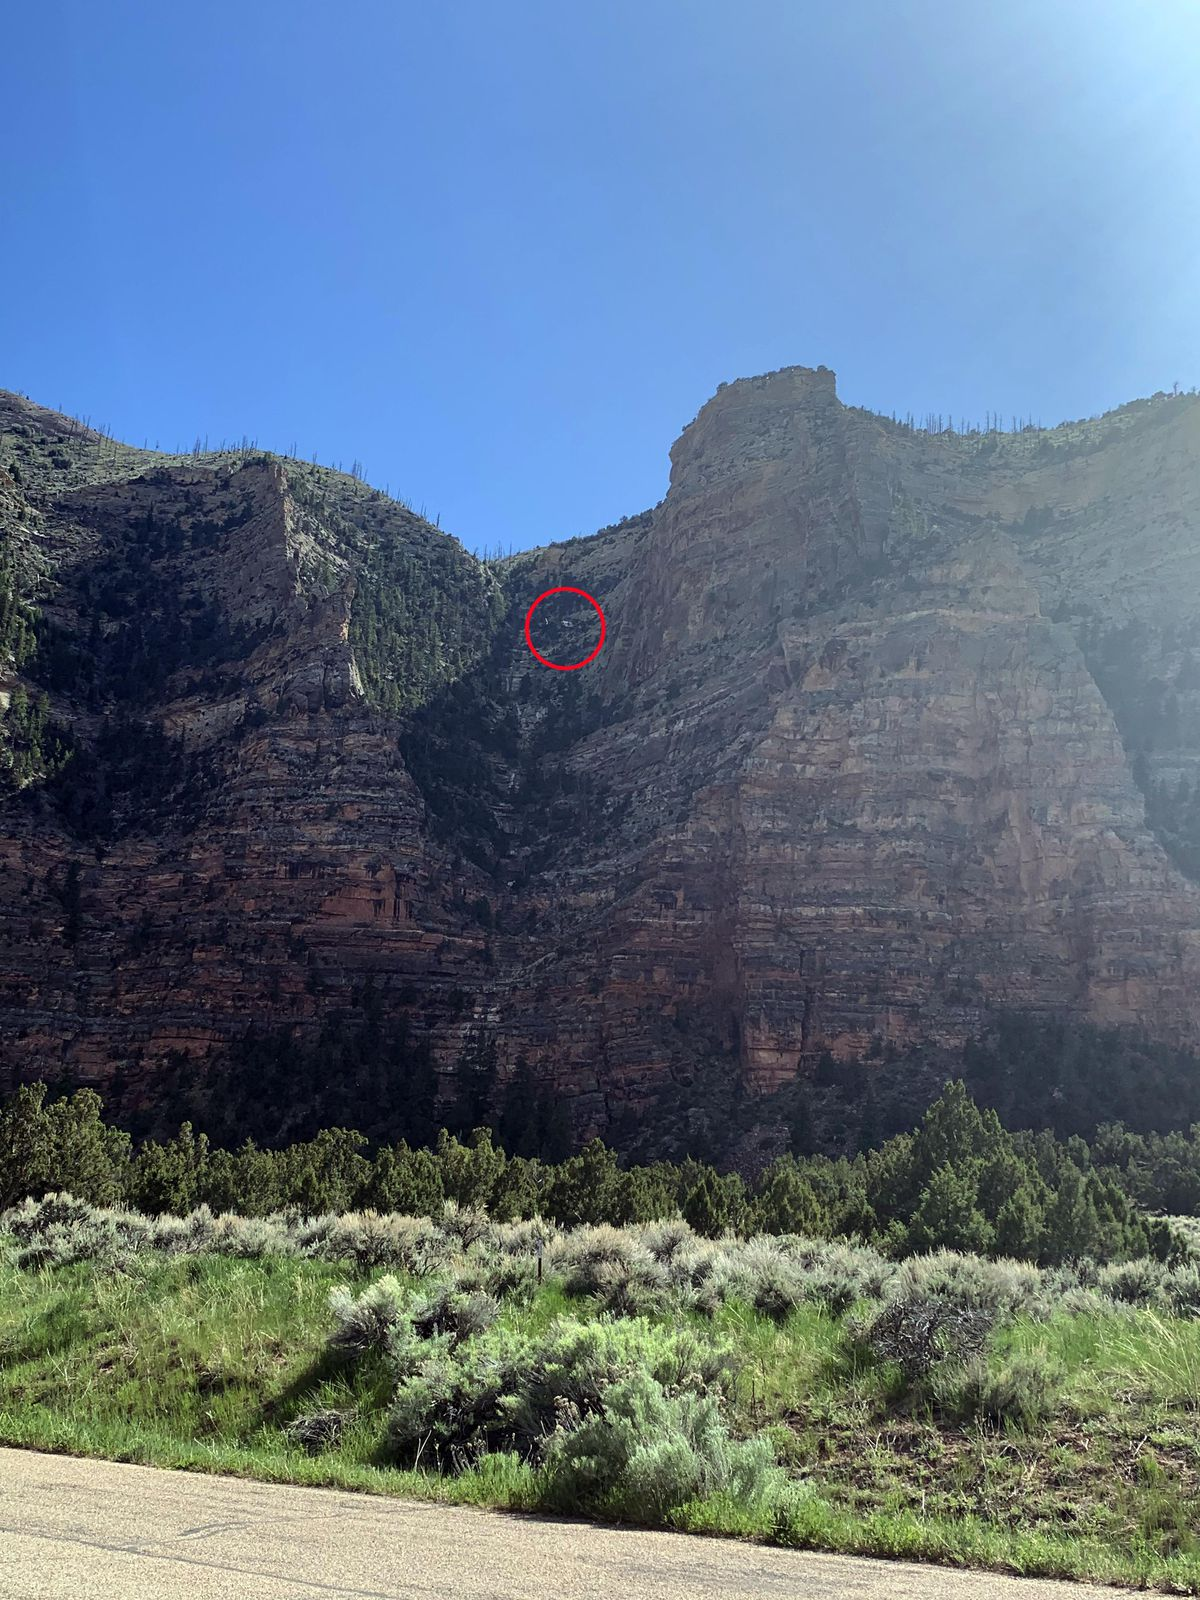 A red circle shows the location of a man was rescued Saturday, May 23, 2020, after becoming injured and stranded on a cliff in Uintah County.